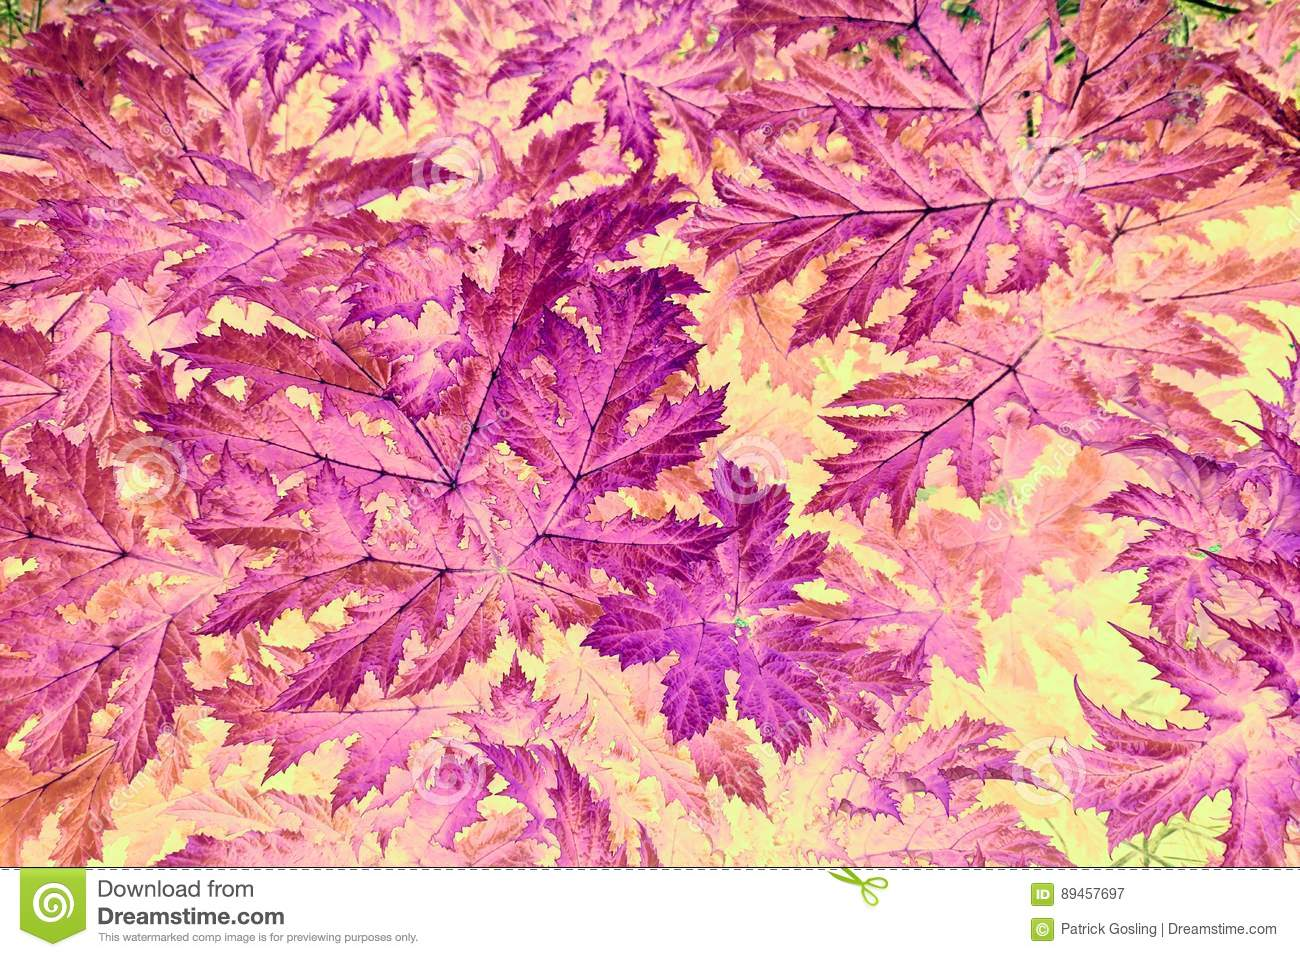 Abstract mauve, pink and purple leaf pattern.